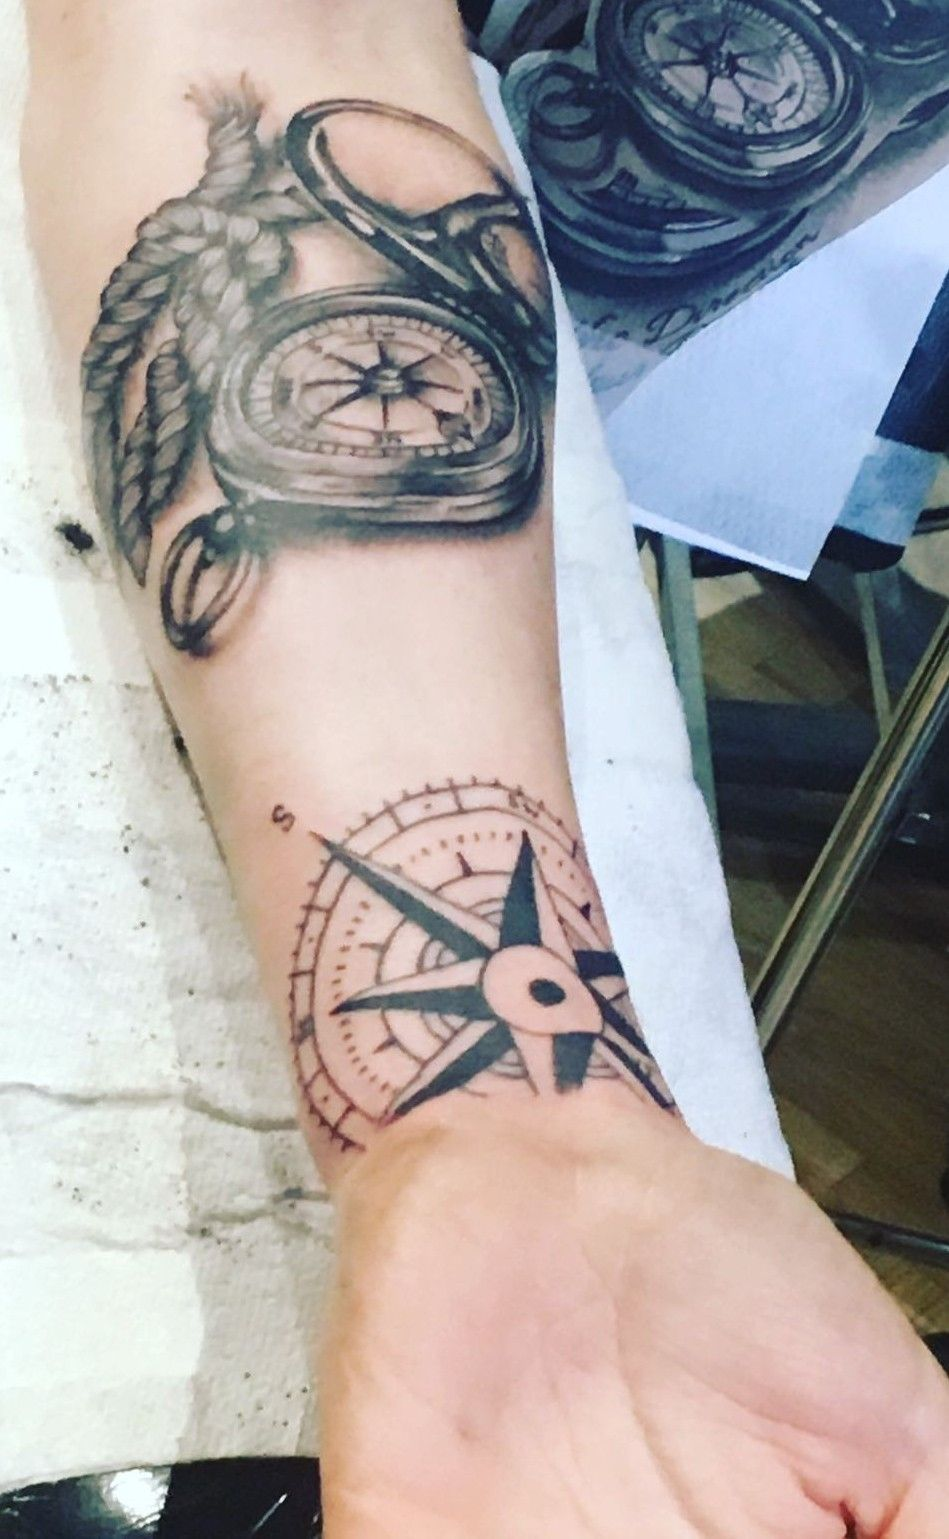 Nautical Half Sleeve Start Compass Tattoo Rope Tattoo To Be Finished With Vintage Map Background And Shading Rope Tattoo Tattoos Compass Tattoo